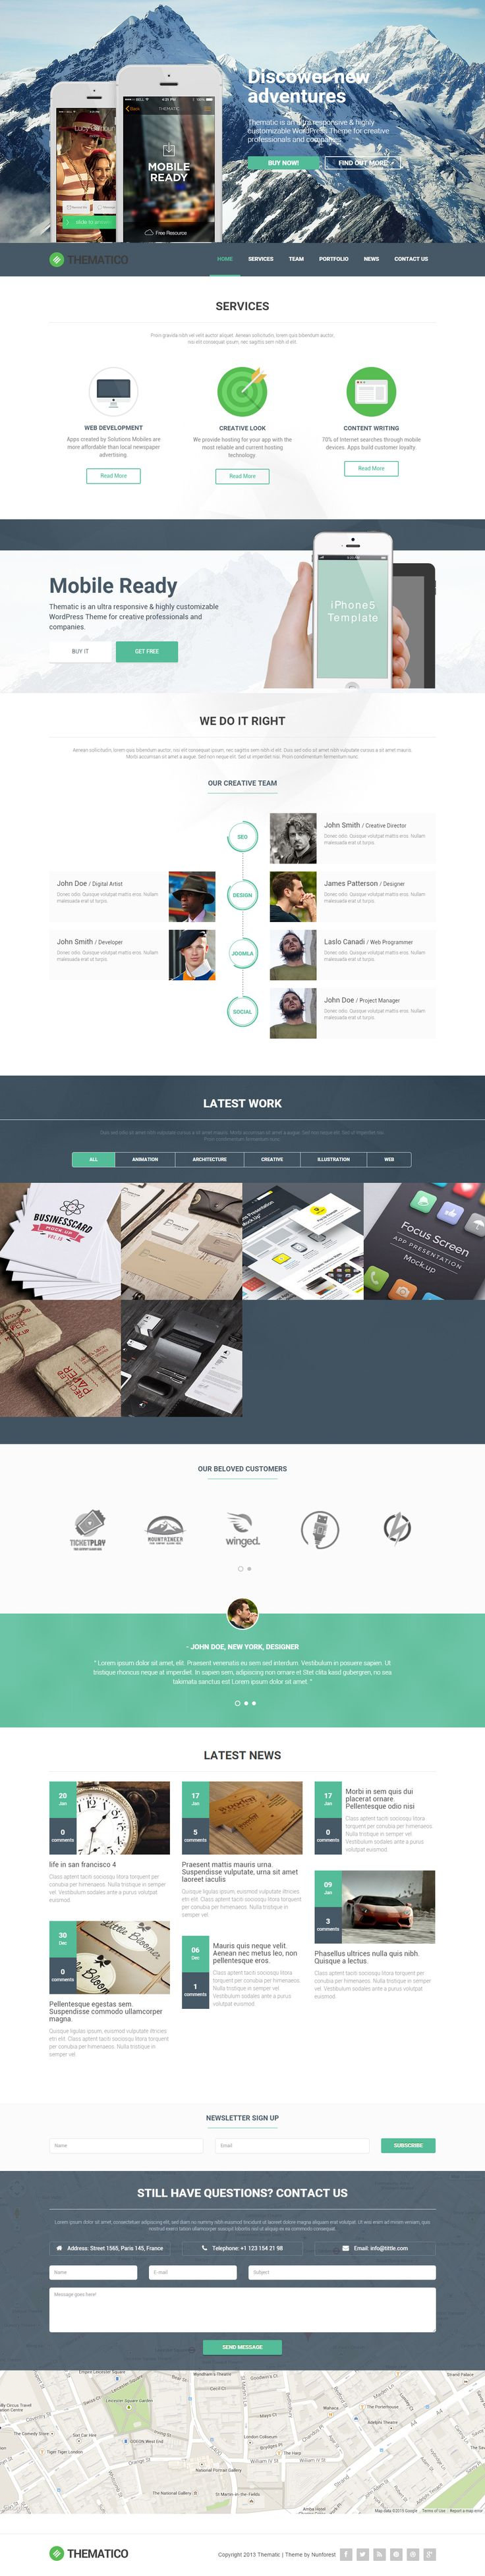 Top Best Bootstrap Drupal Ideas On Pinterest Html Css Css - Bootstrap contact us page with map